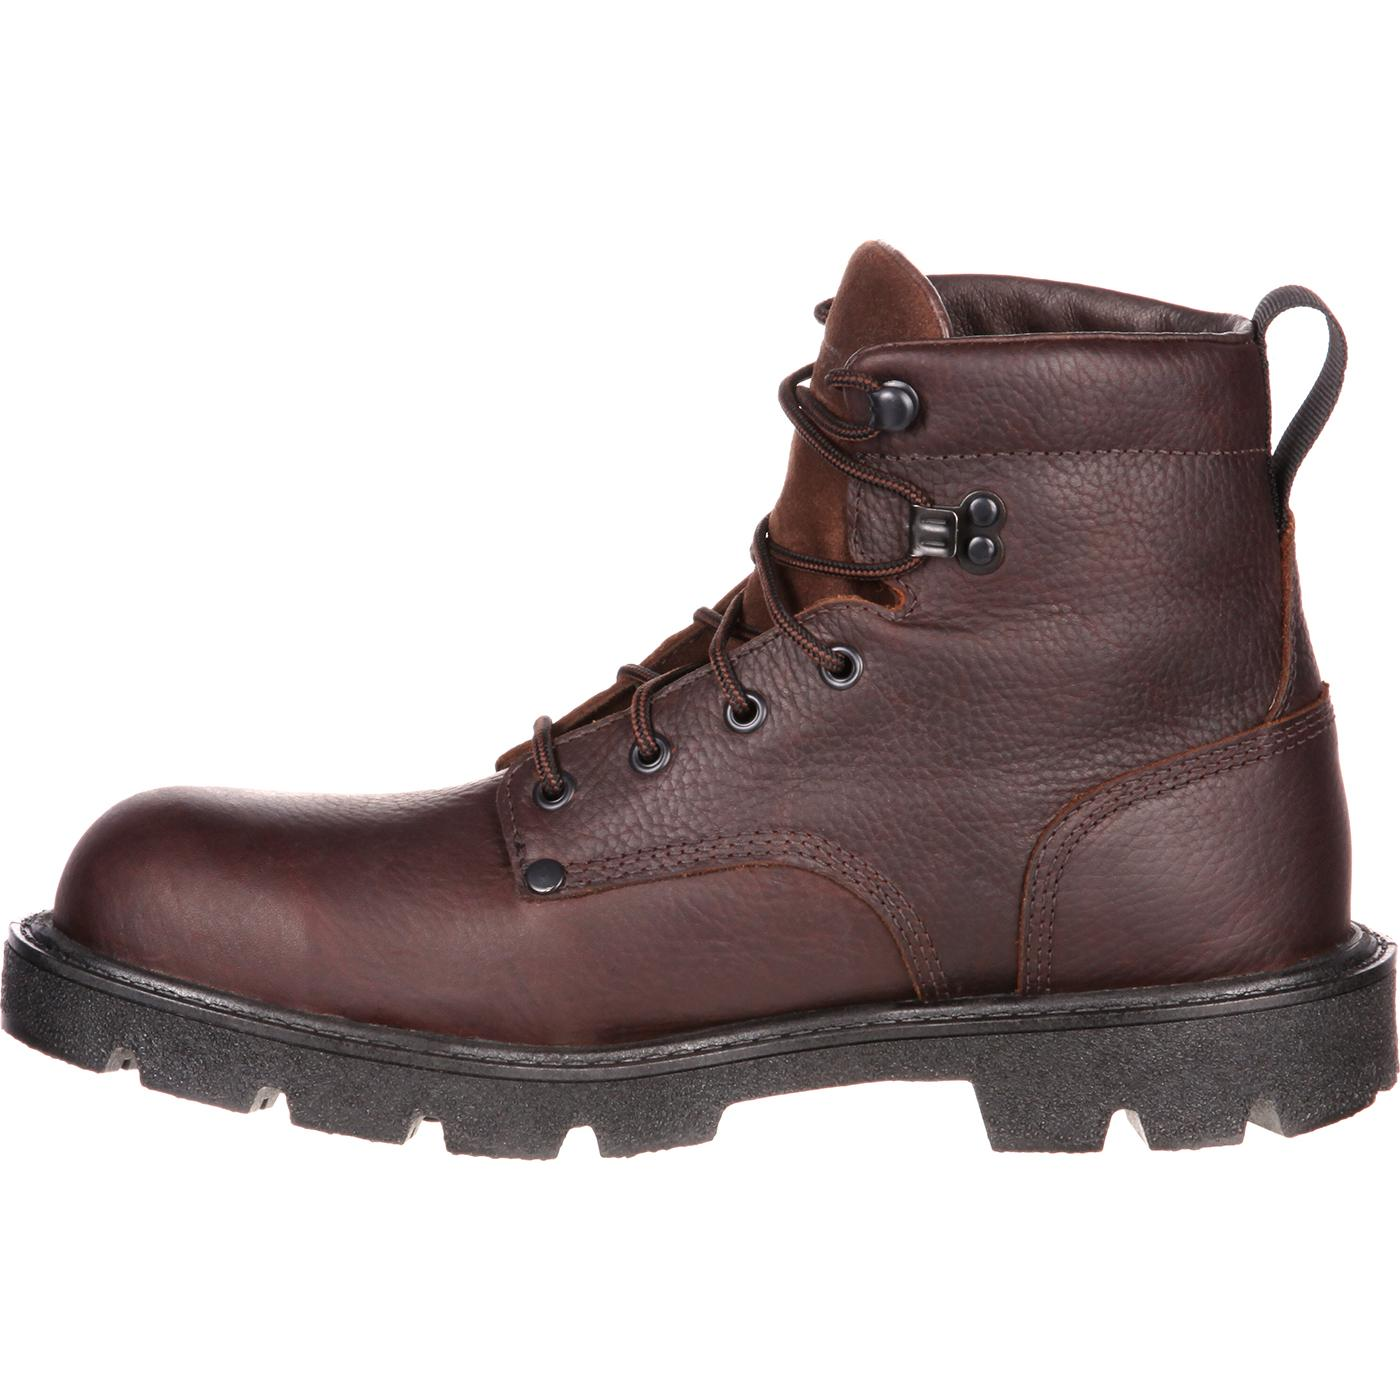 d27a8506b77 QUICKFIT Collection: Lehigh Safety Shoes Steel Toe Work Boot